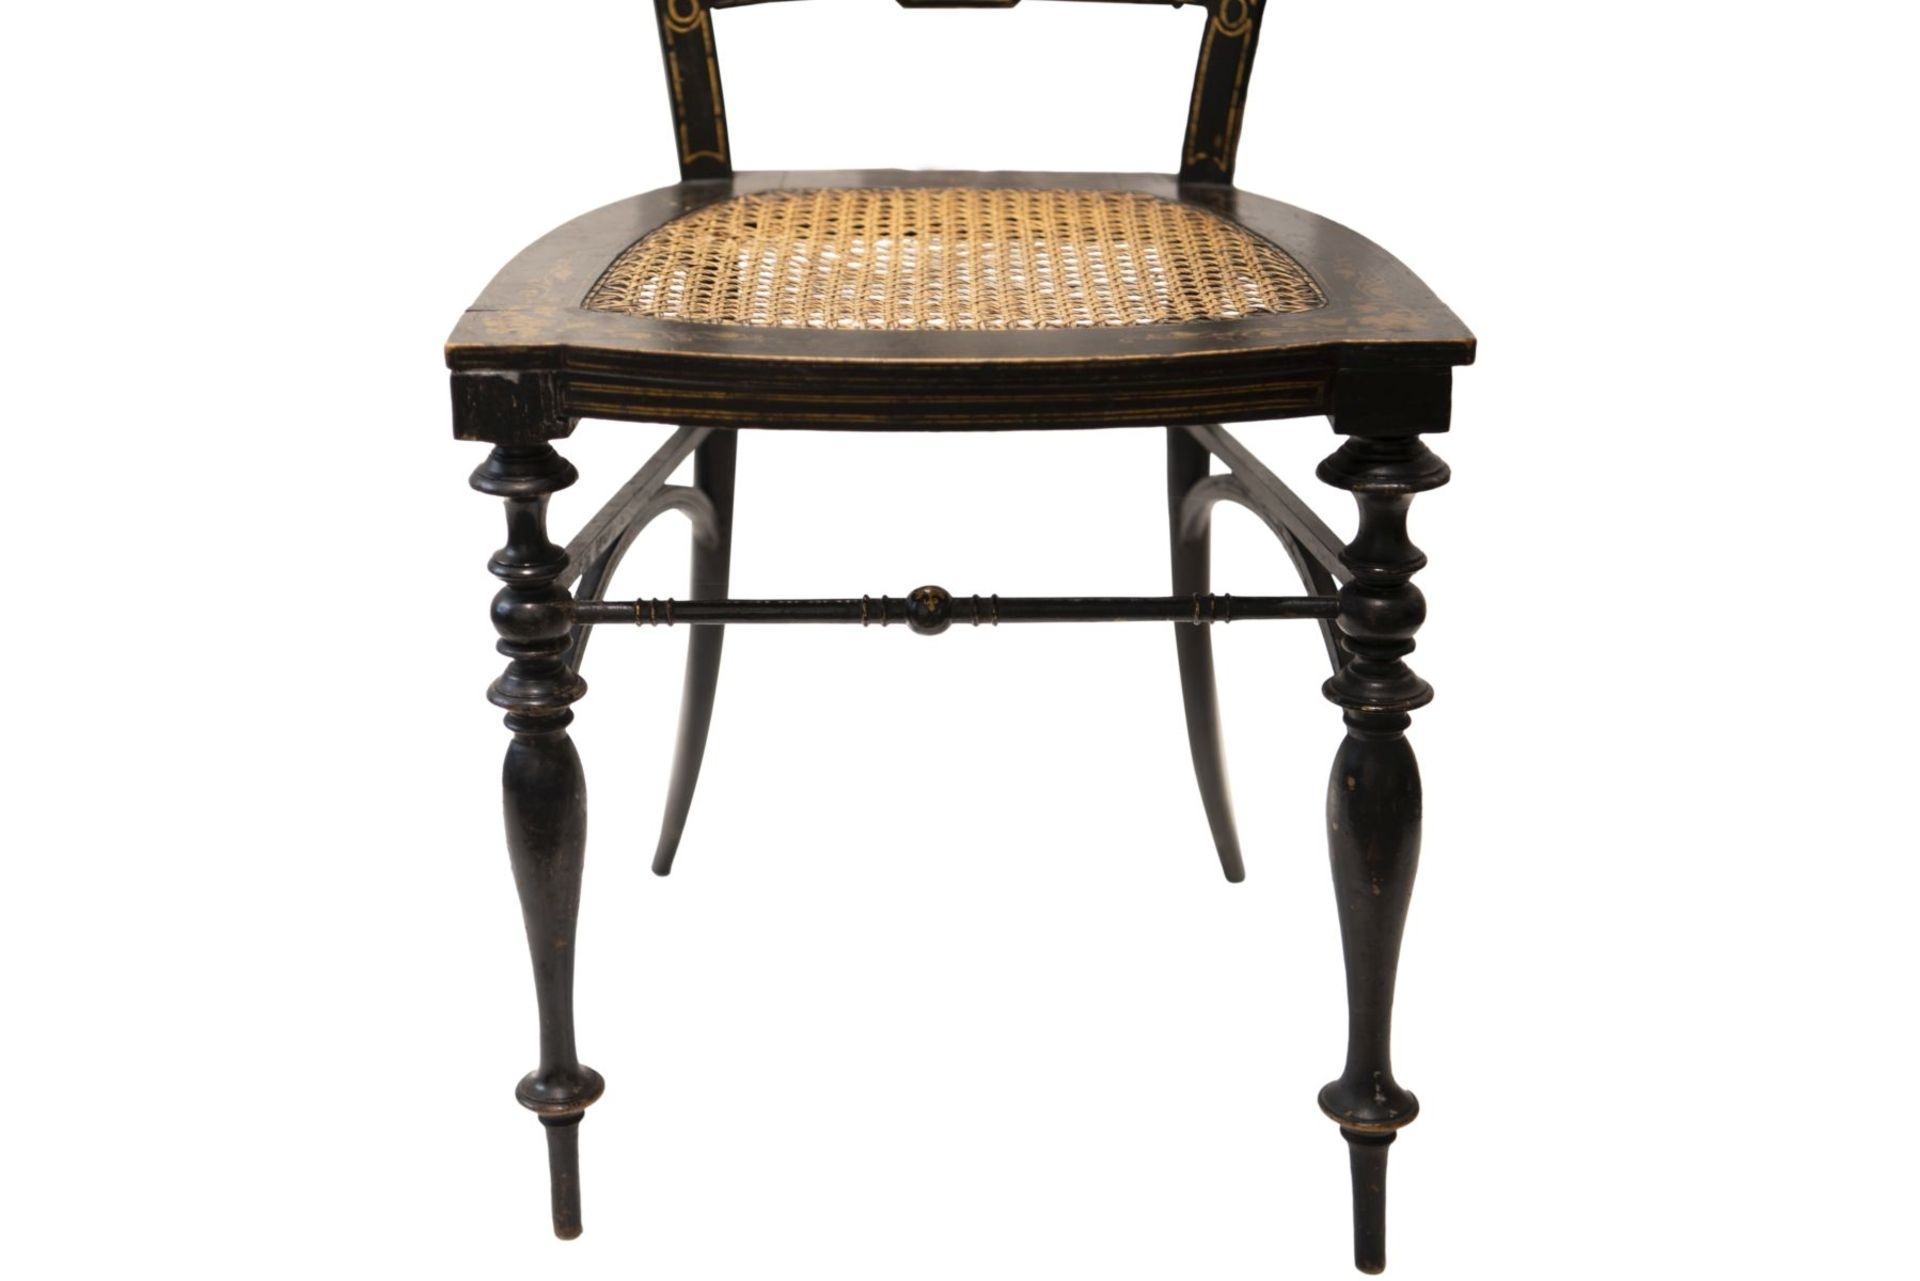 Decorative chair, French Chinoiserie - Image 5 of 7